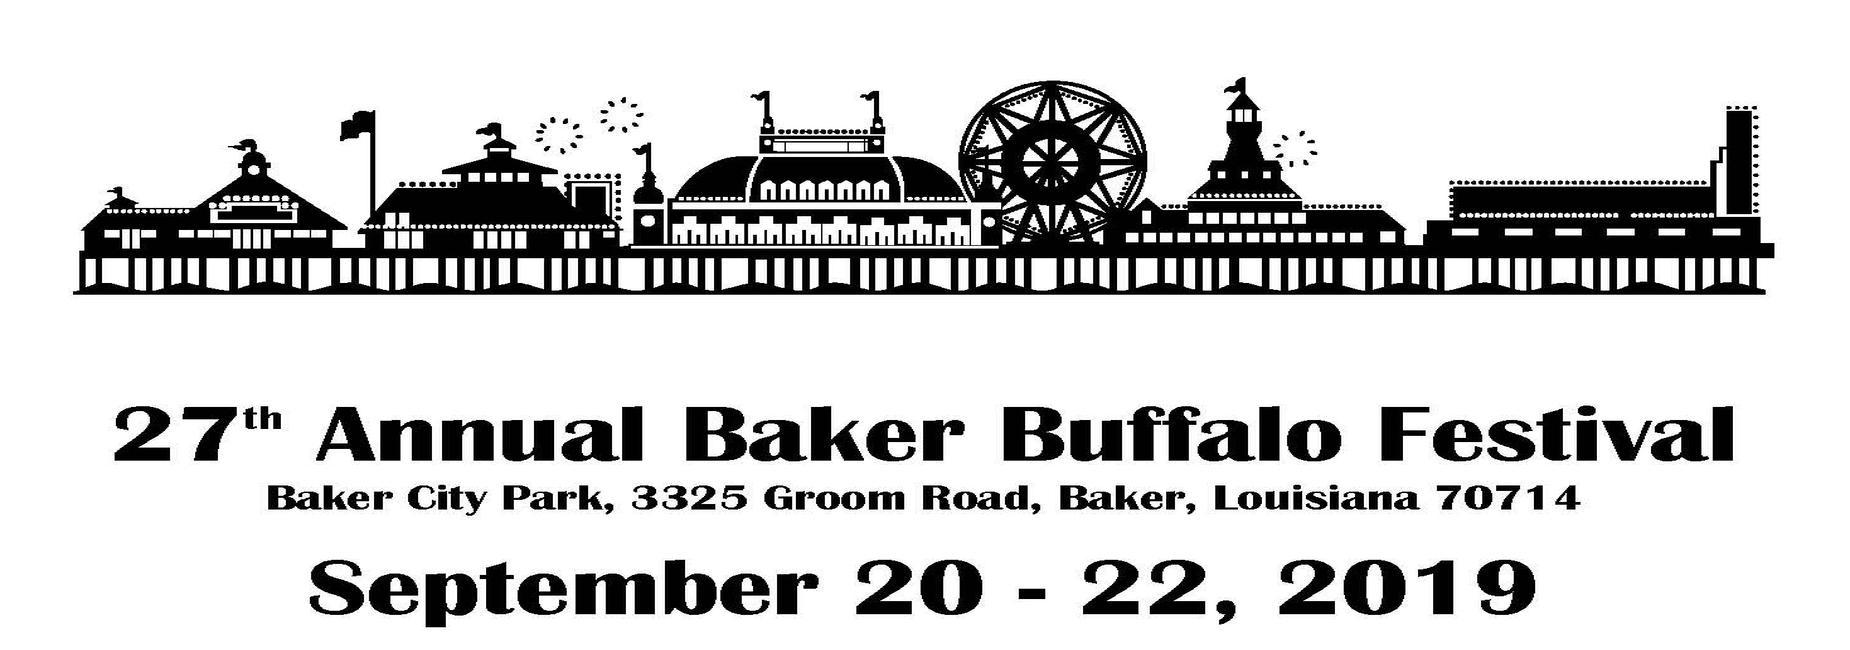 A poster that is advertising the 2019 Baker Buffalo Festival scheduled for September 20-22, 2019